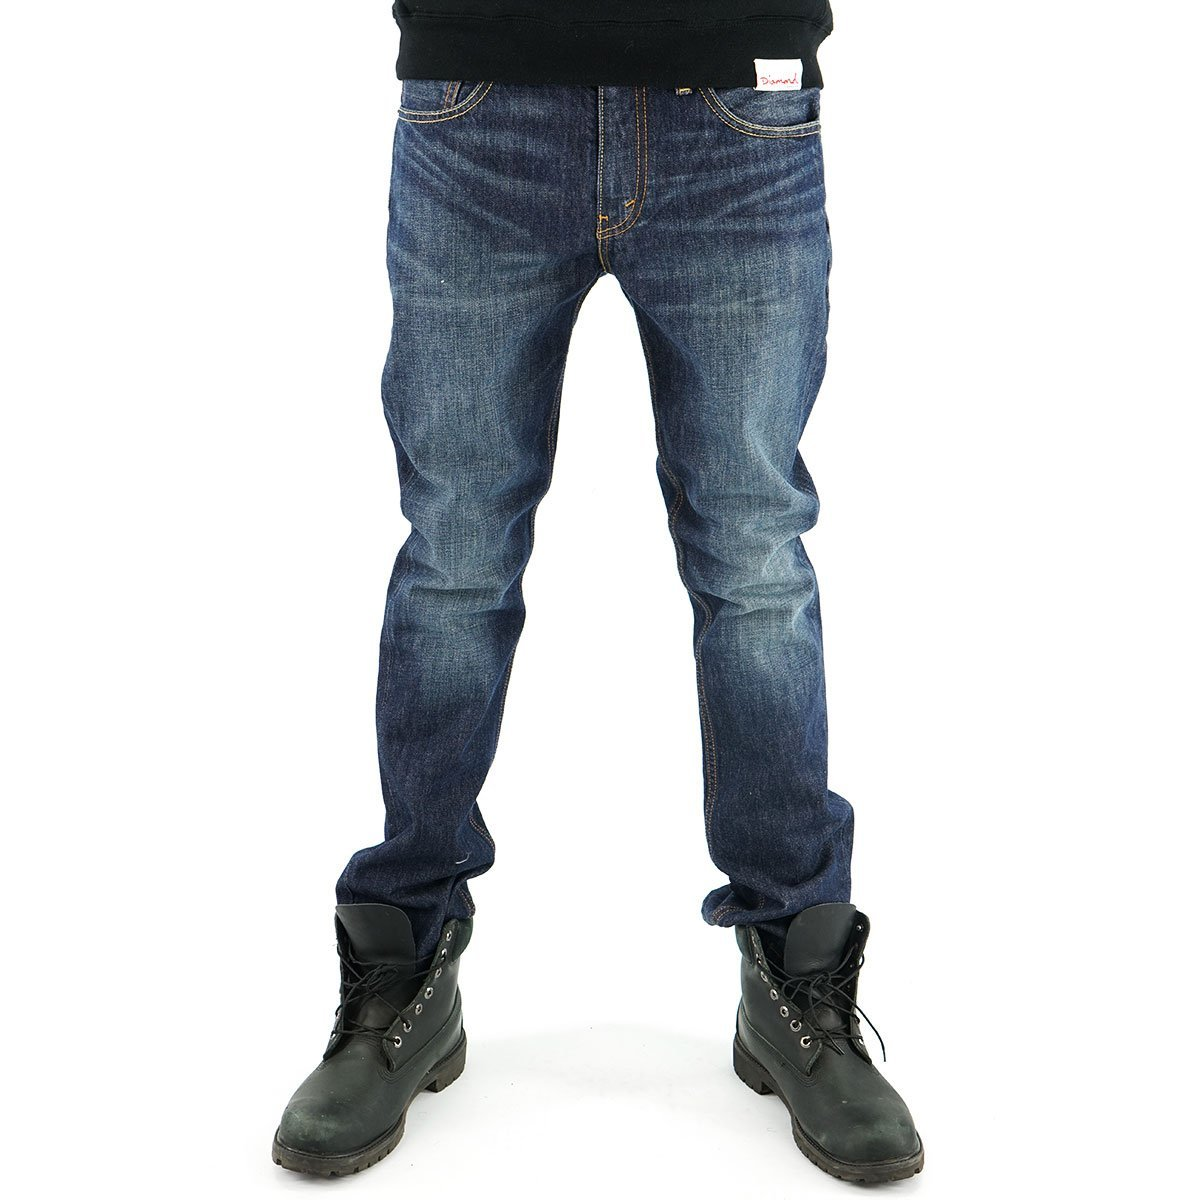 Levis Mens 511 Slim Fit Jean - Mens Urban Clothing